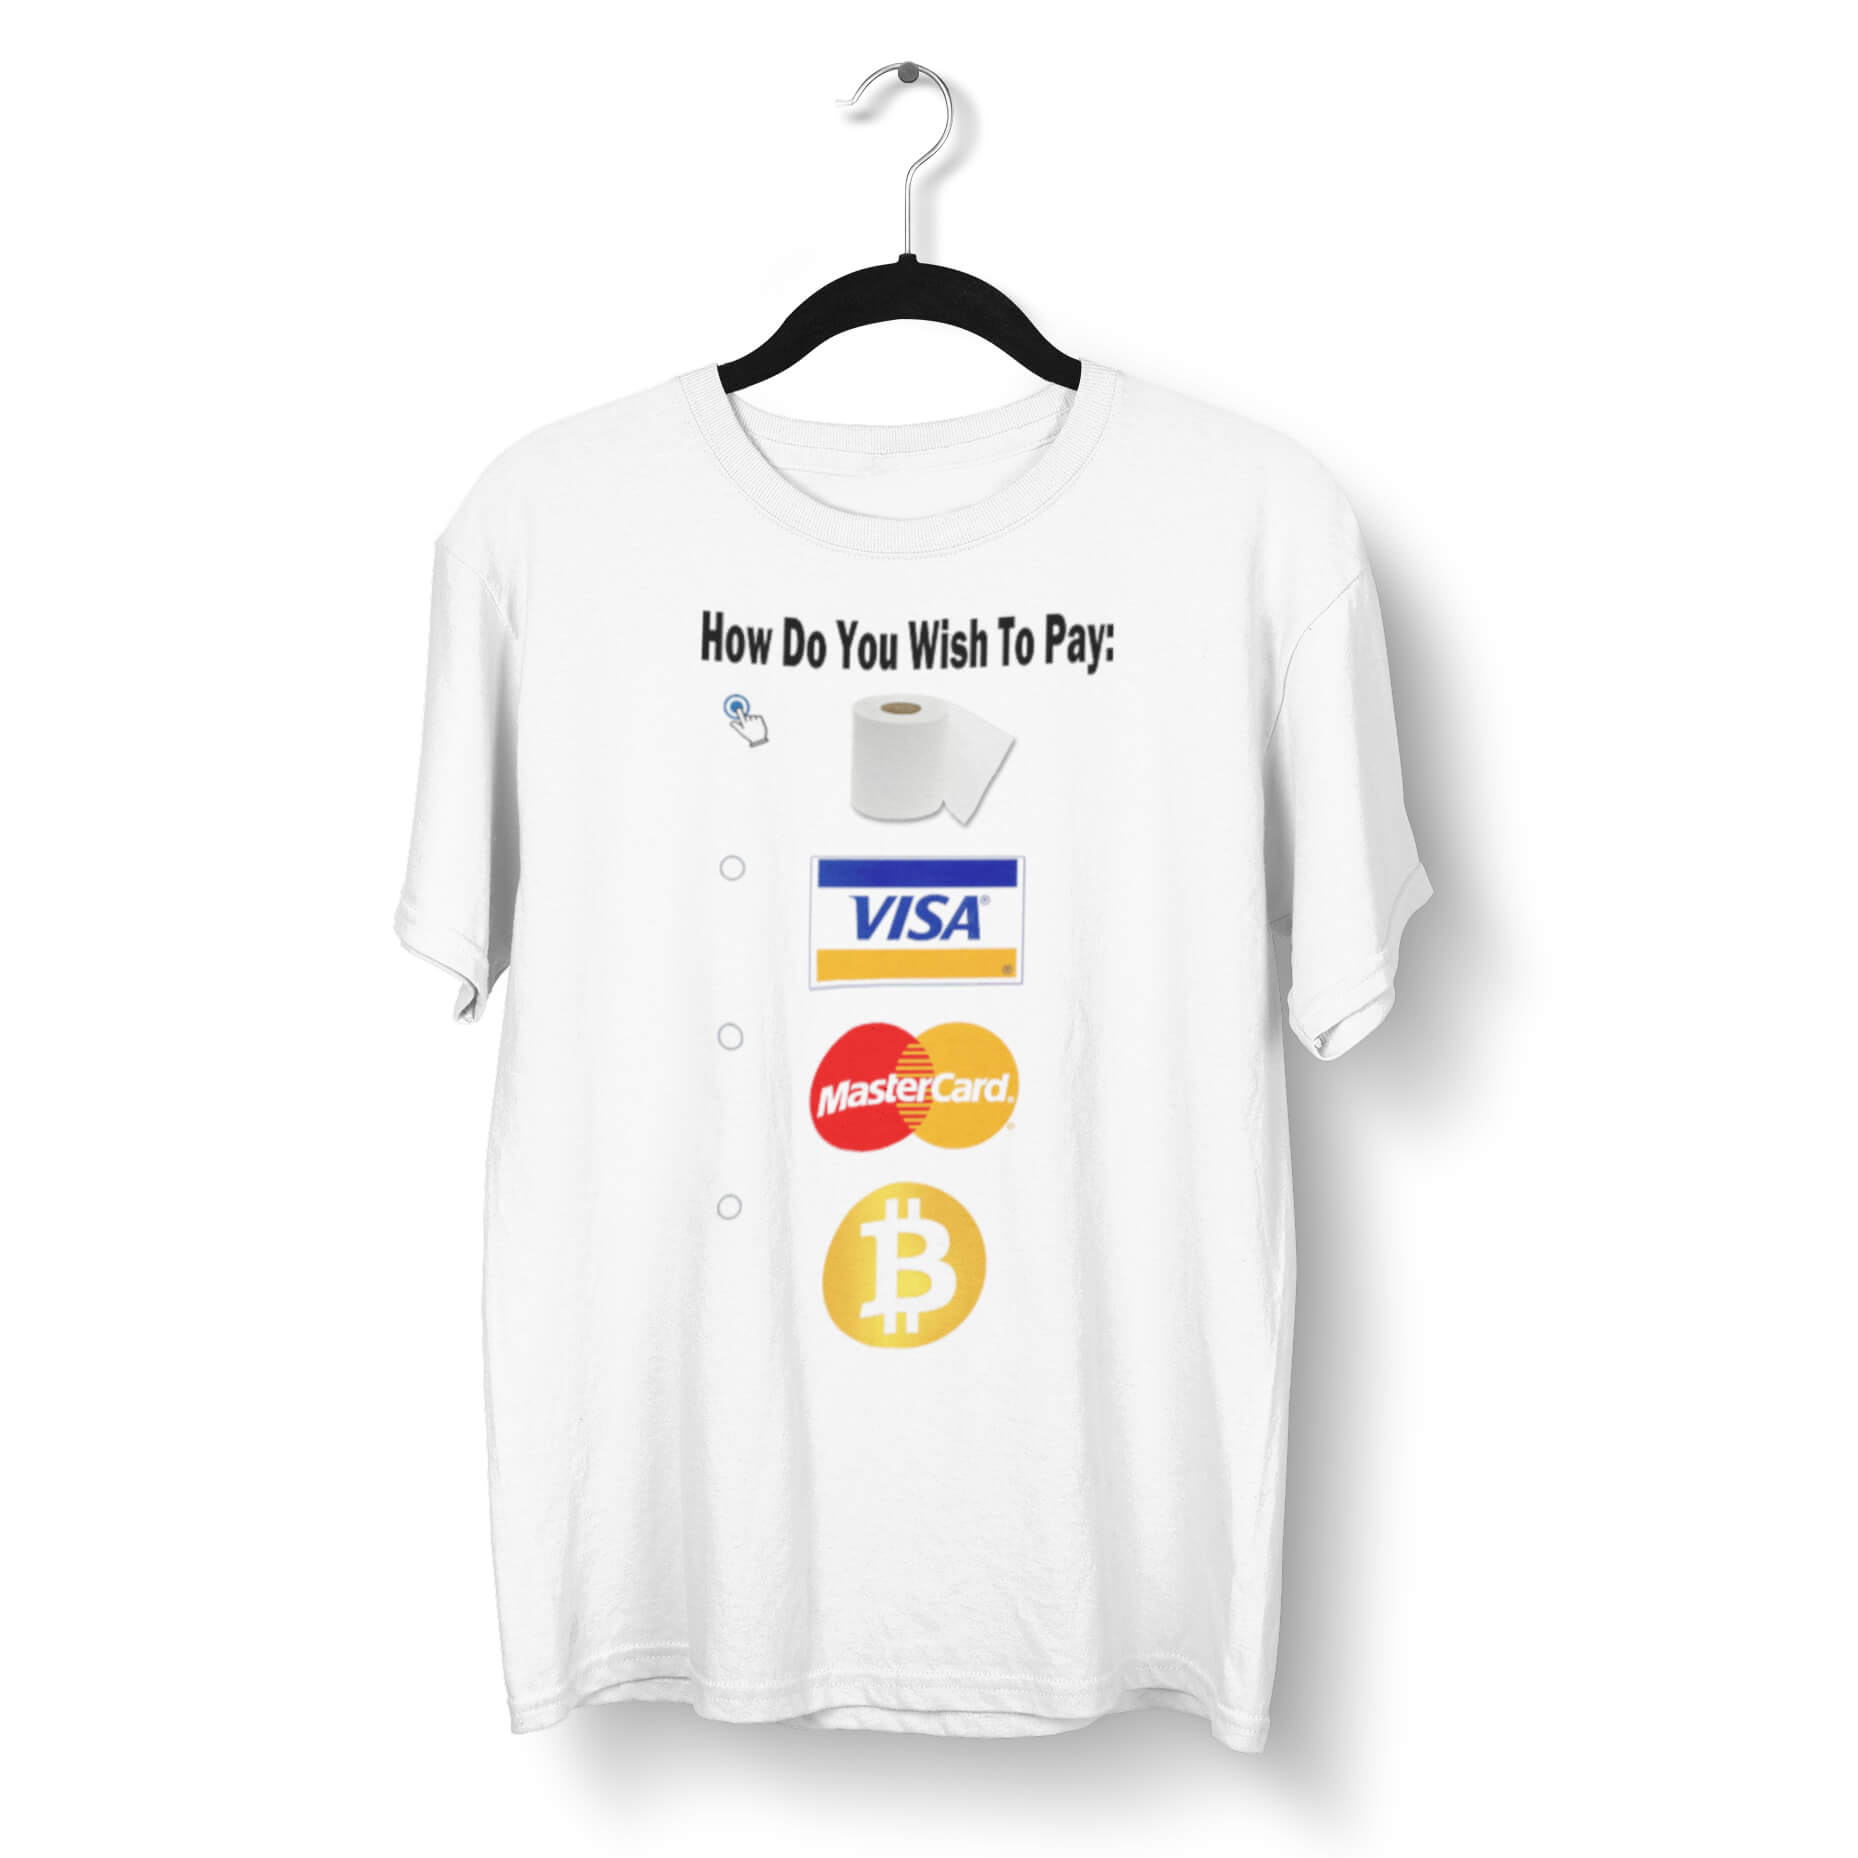 How Would You Like To Pay T-Shirt